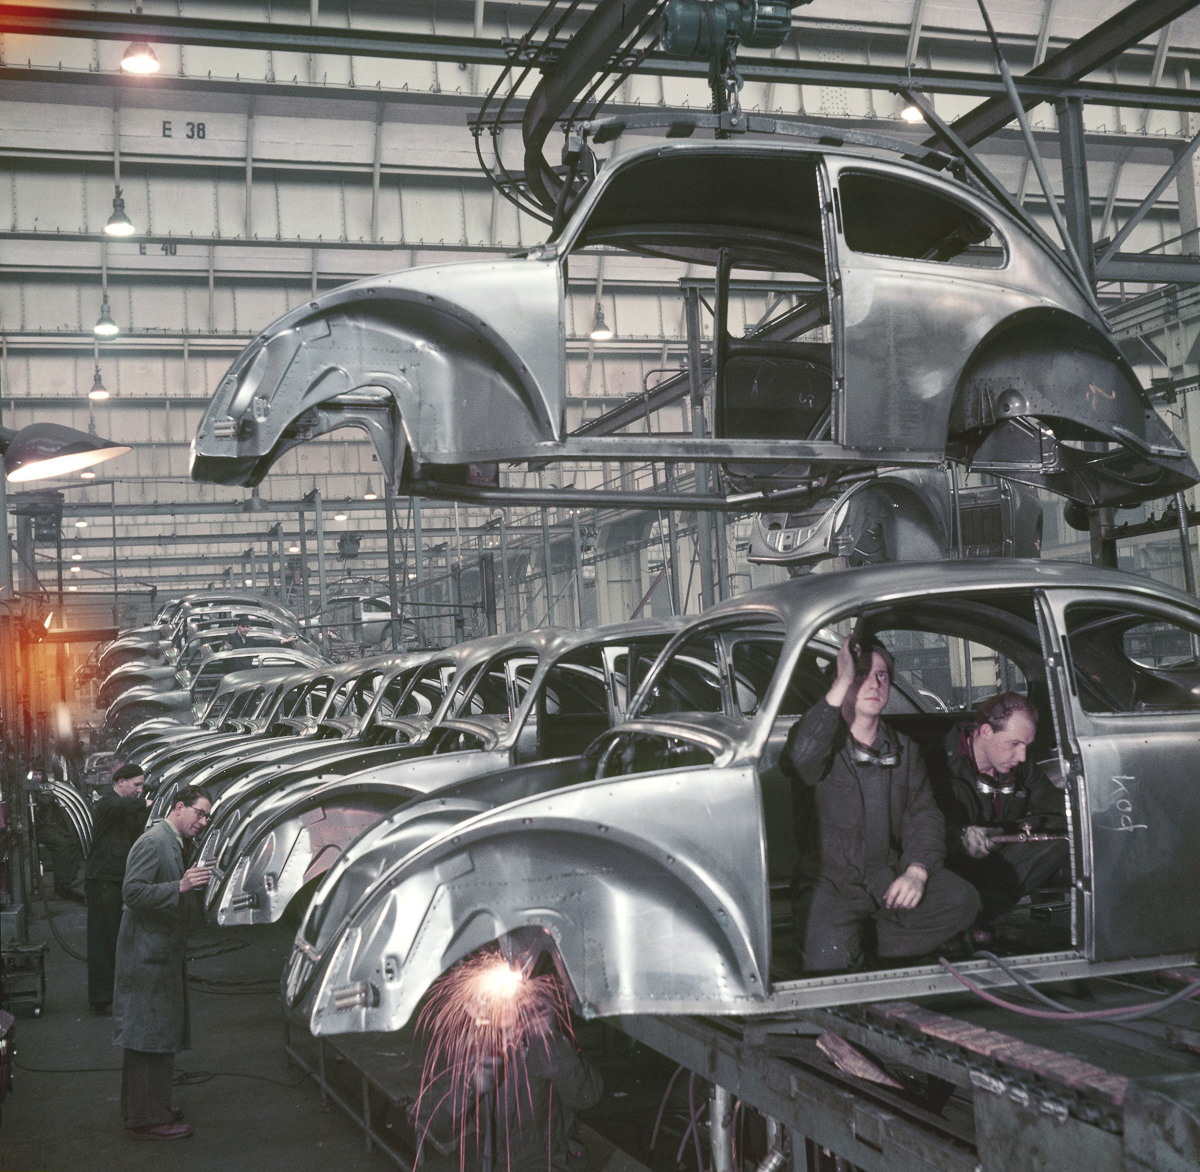 Germany, car industry. Economical miracle. Production of the Volkswagen Beetle at the VW plant in Wolfsburg - 1952 Picture: Wolff & Tritschler